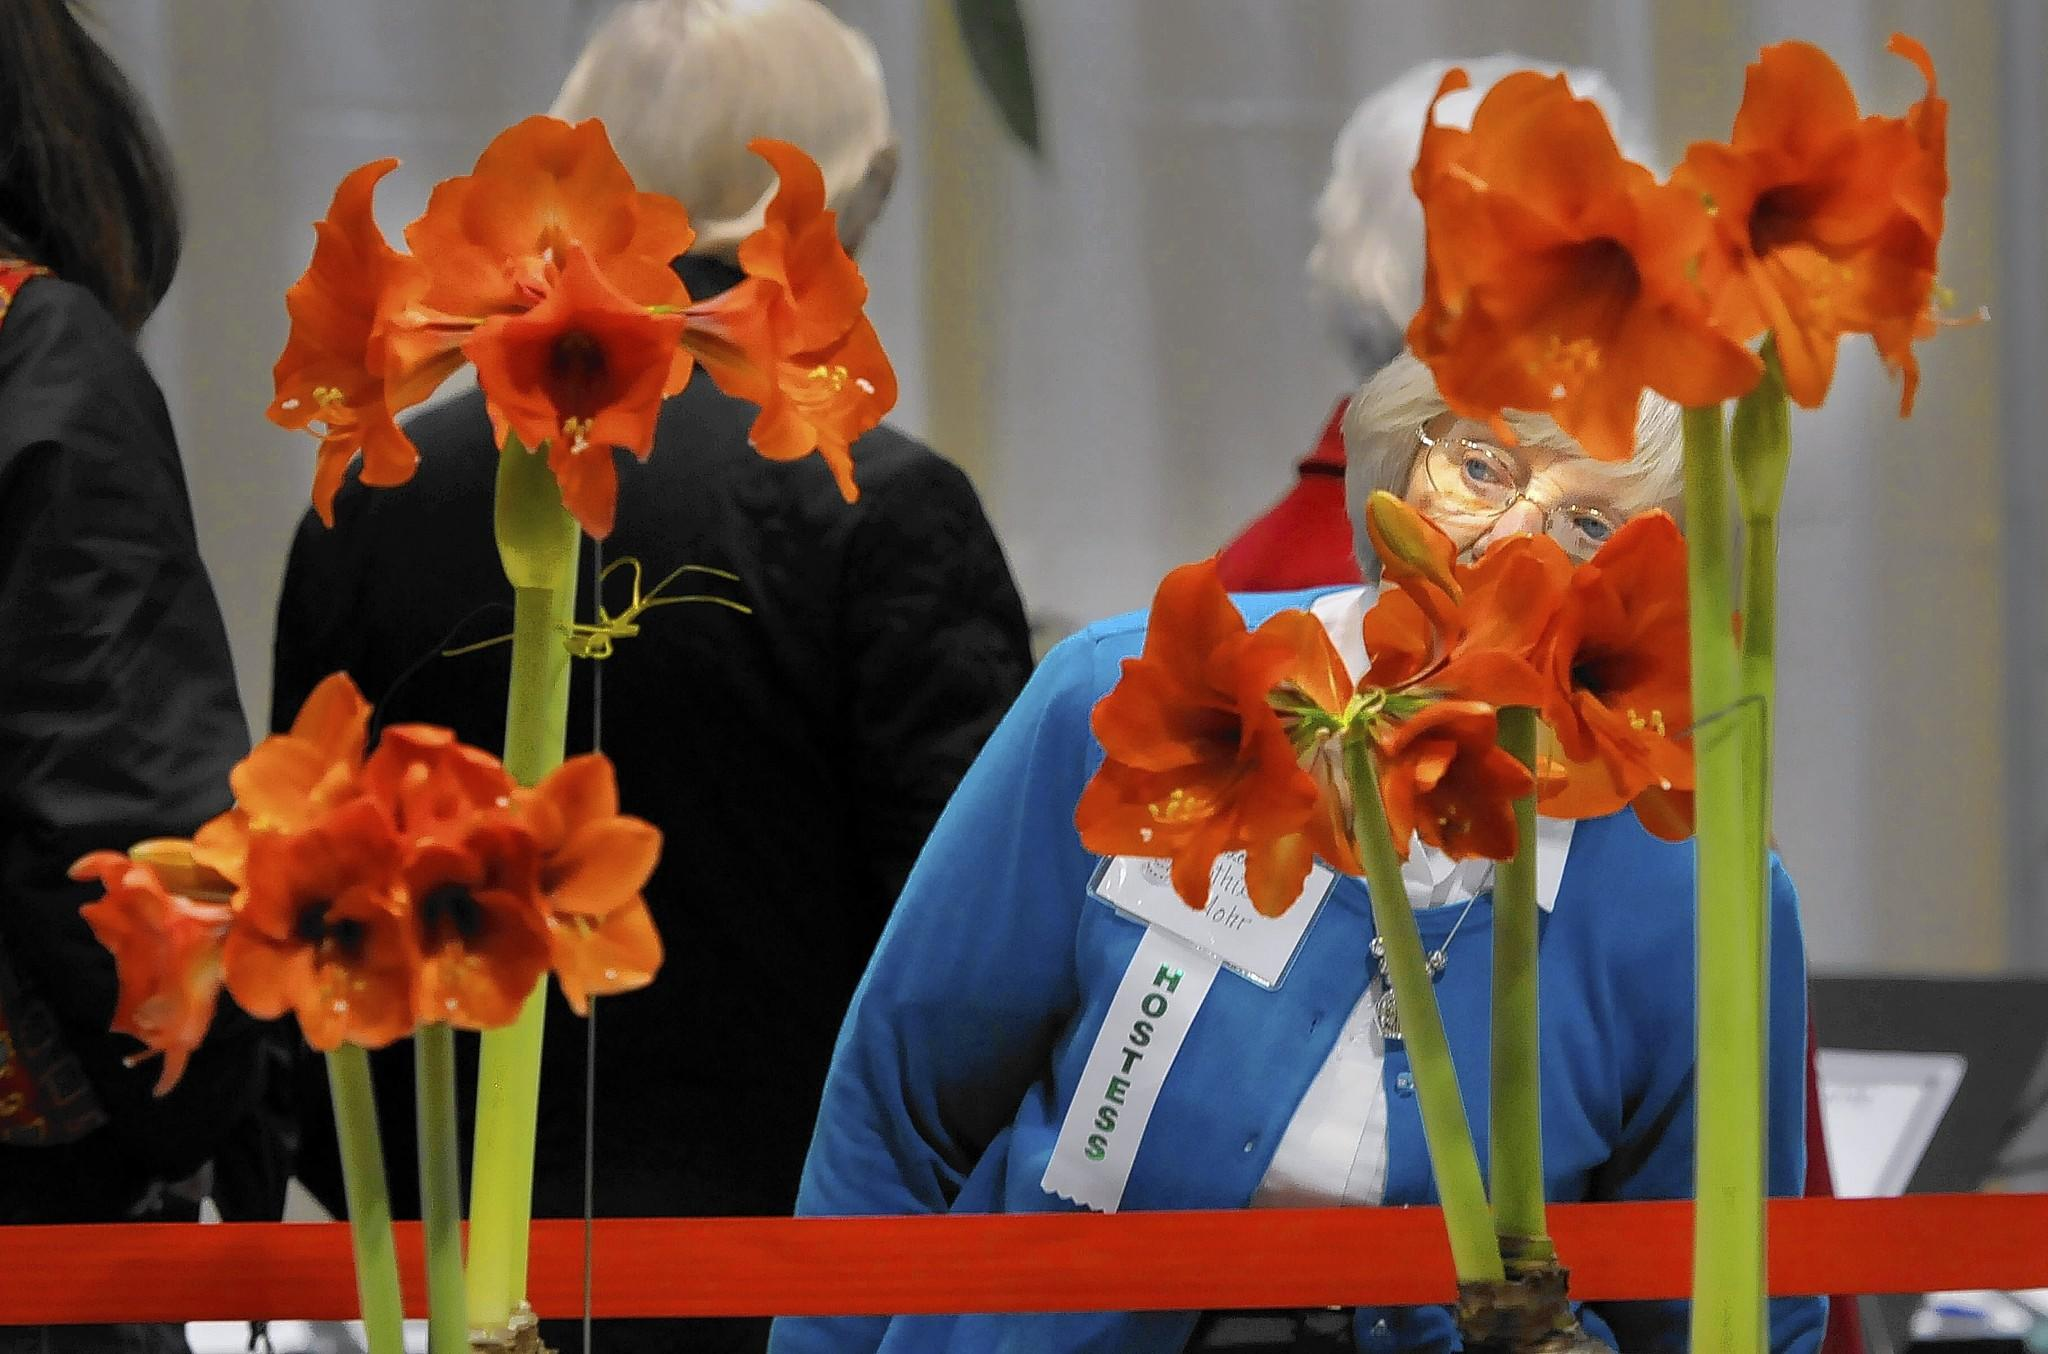 Ruth Mohr, a hostess in the horticulture exhibit area at the Connecticut Flower and Garden Show examines winning examples of Amaryllis on display.